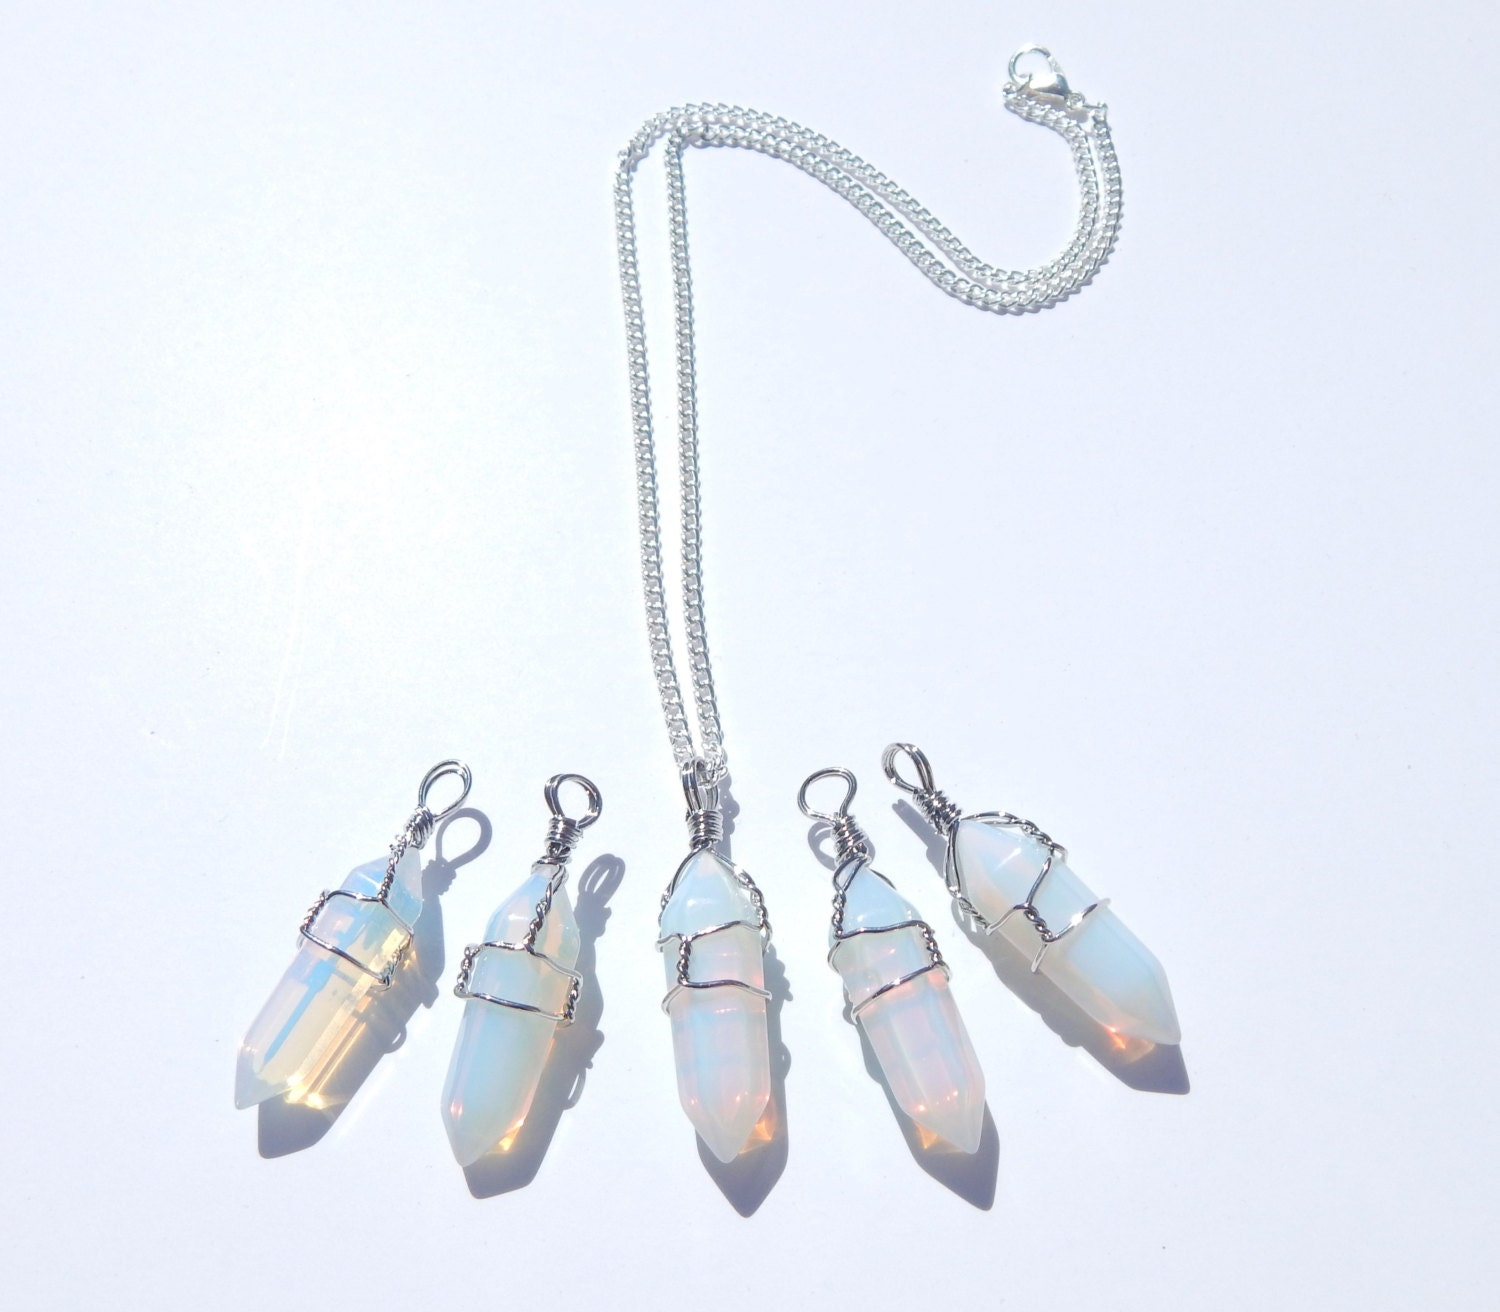 star collection pendant teardrop cornwall shop opalite silver shooting inverted